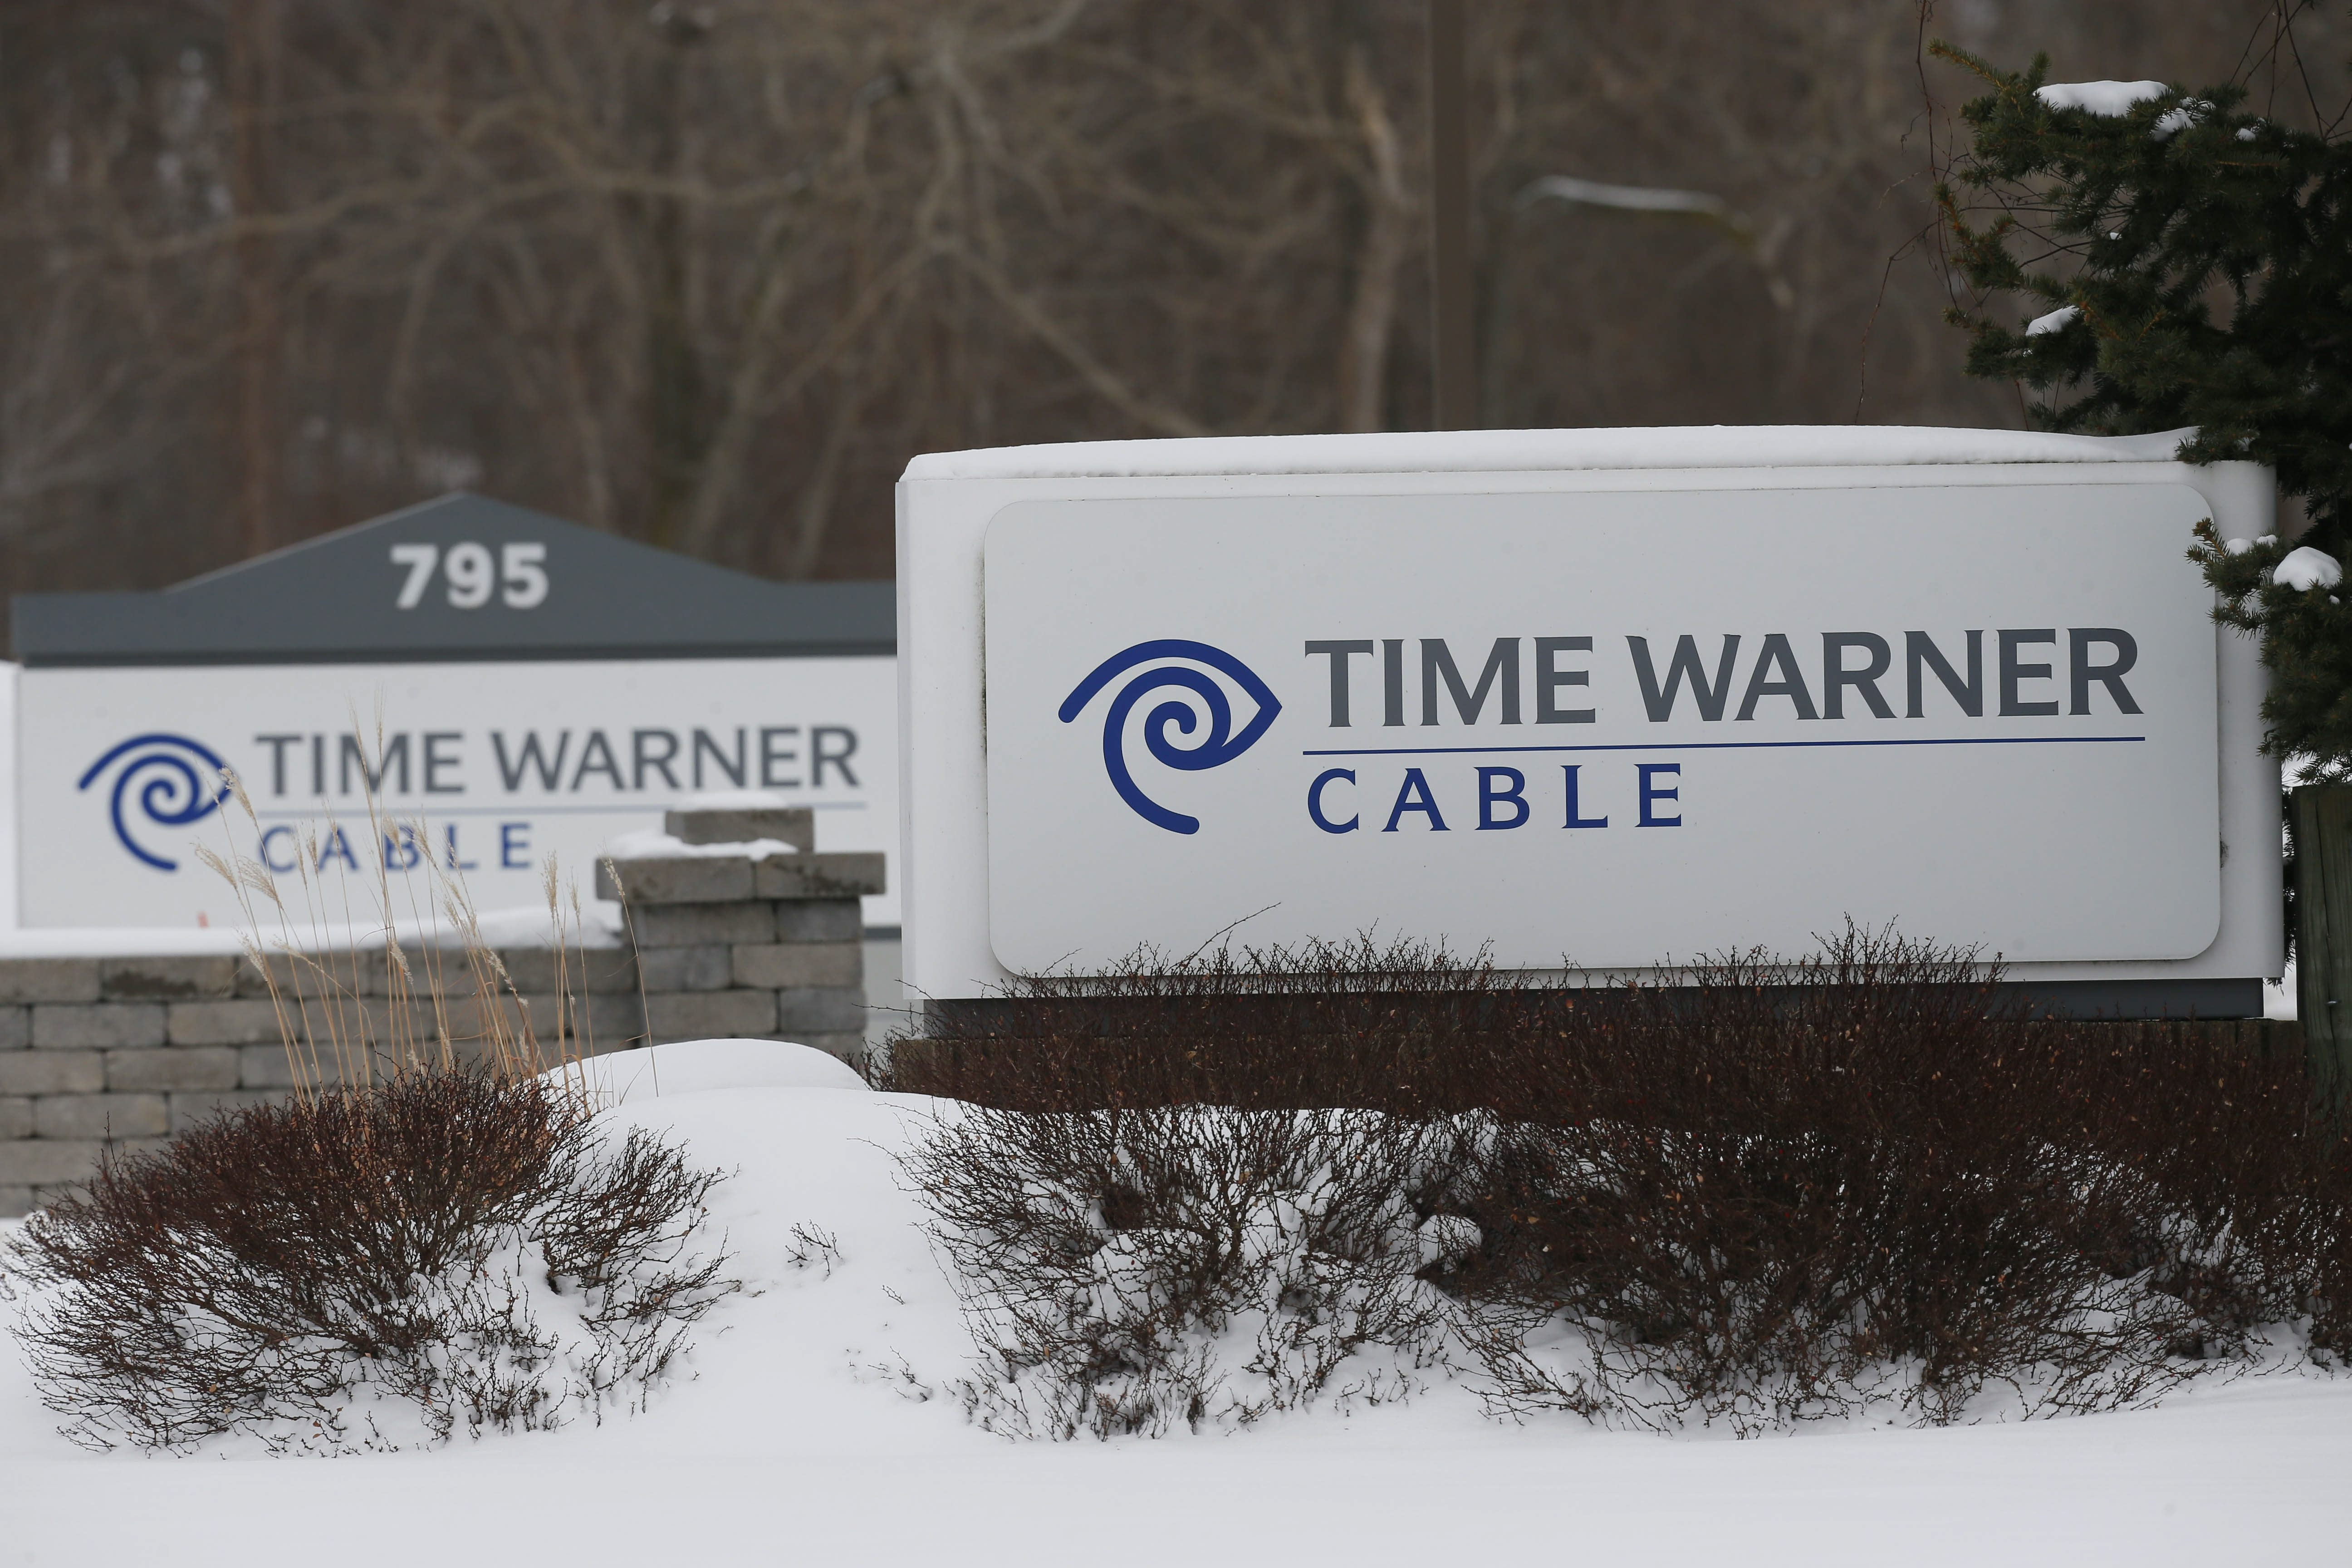 Time Warner Cable will raise its television and Internet rates by an average of 6.4 percent starting with the March 19 billing cycle.